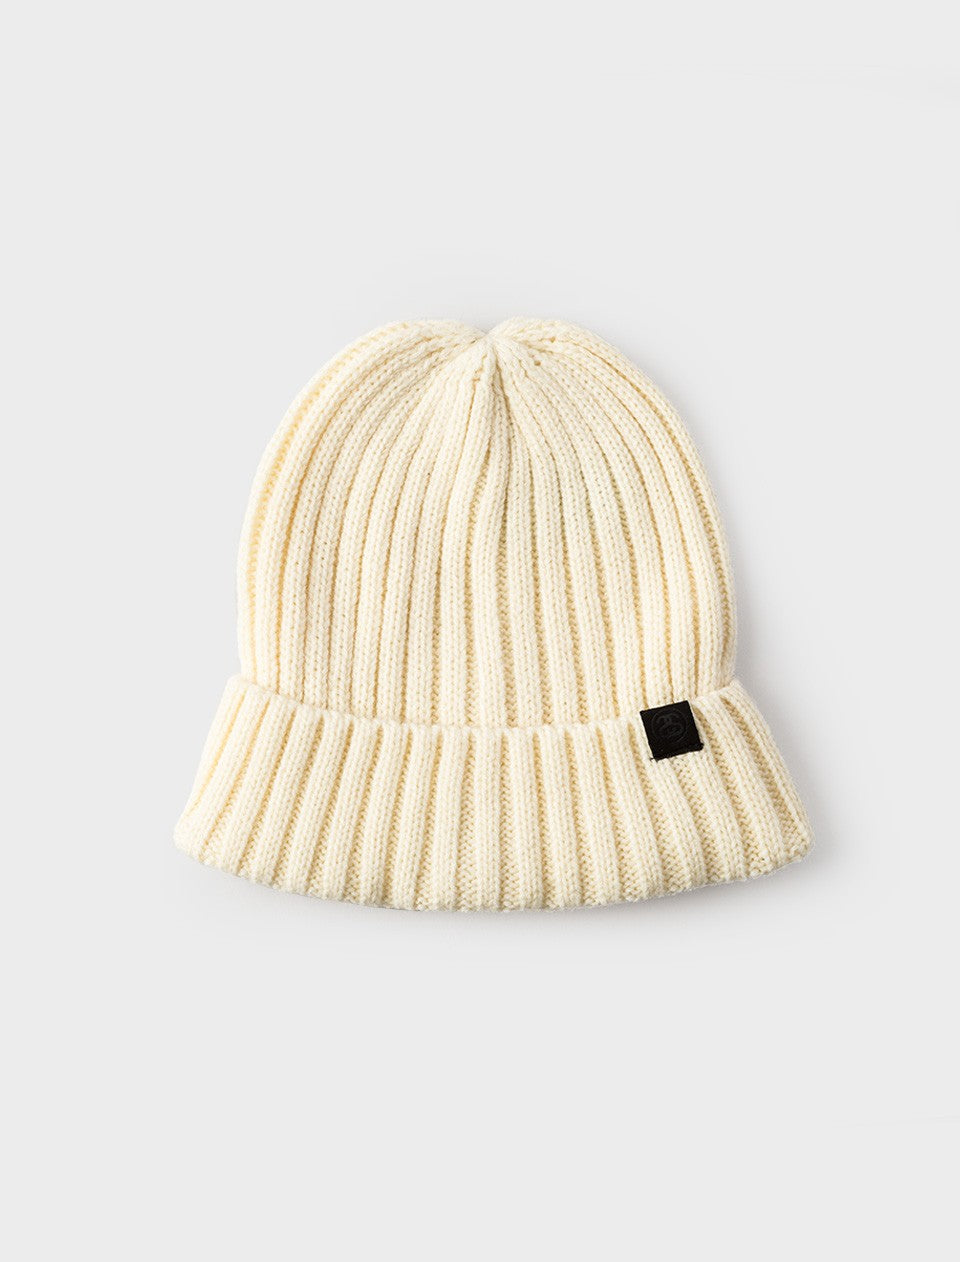 52484958532 Stussy Simple Wool Cuff Beanie 132795-WT OFF WHITE Price  £43.00